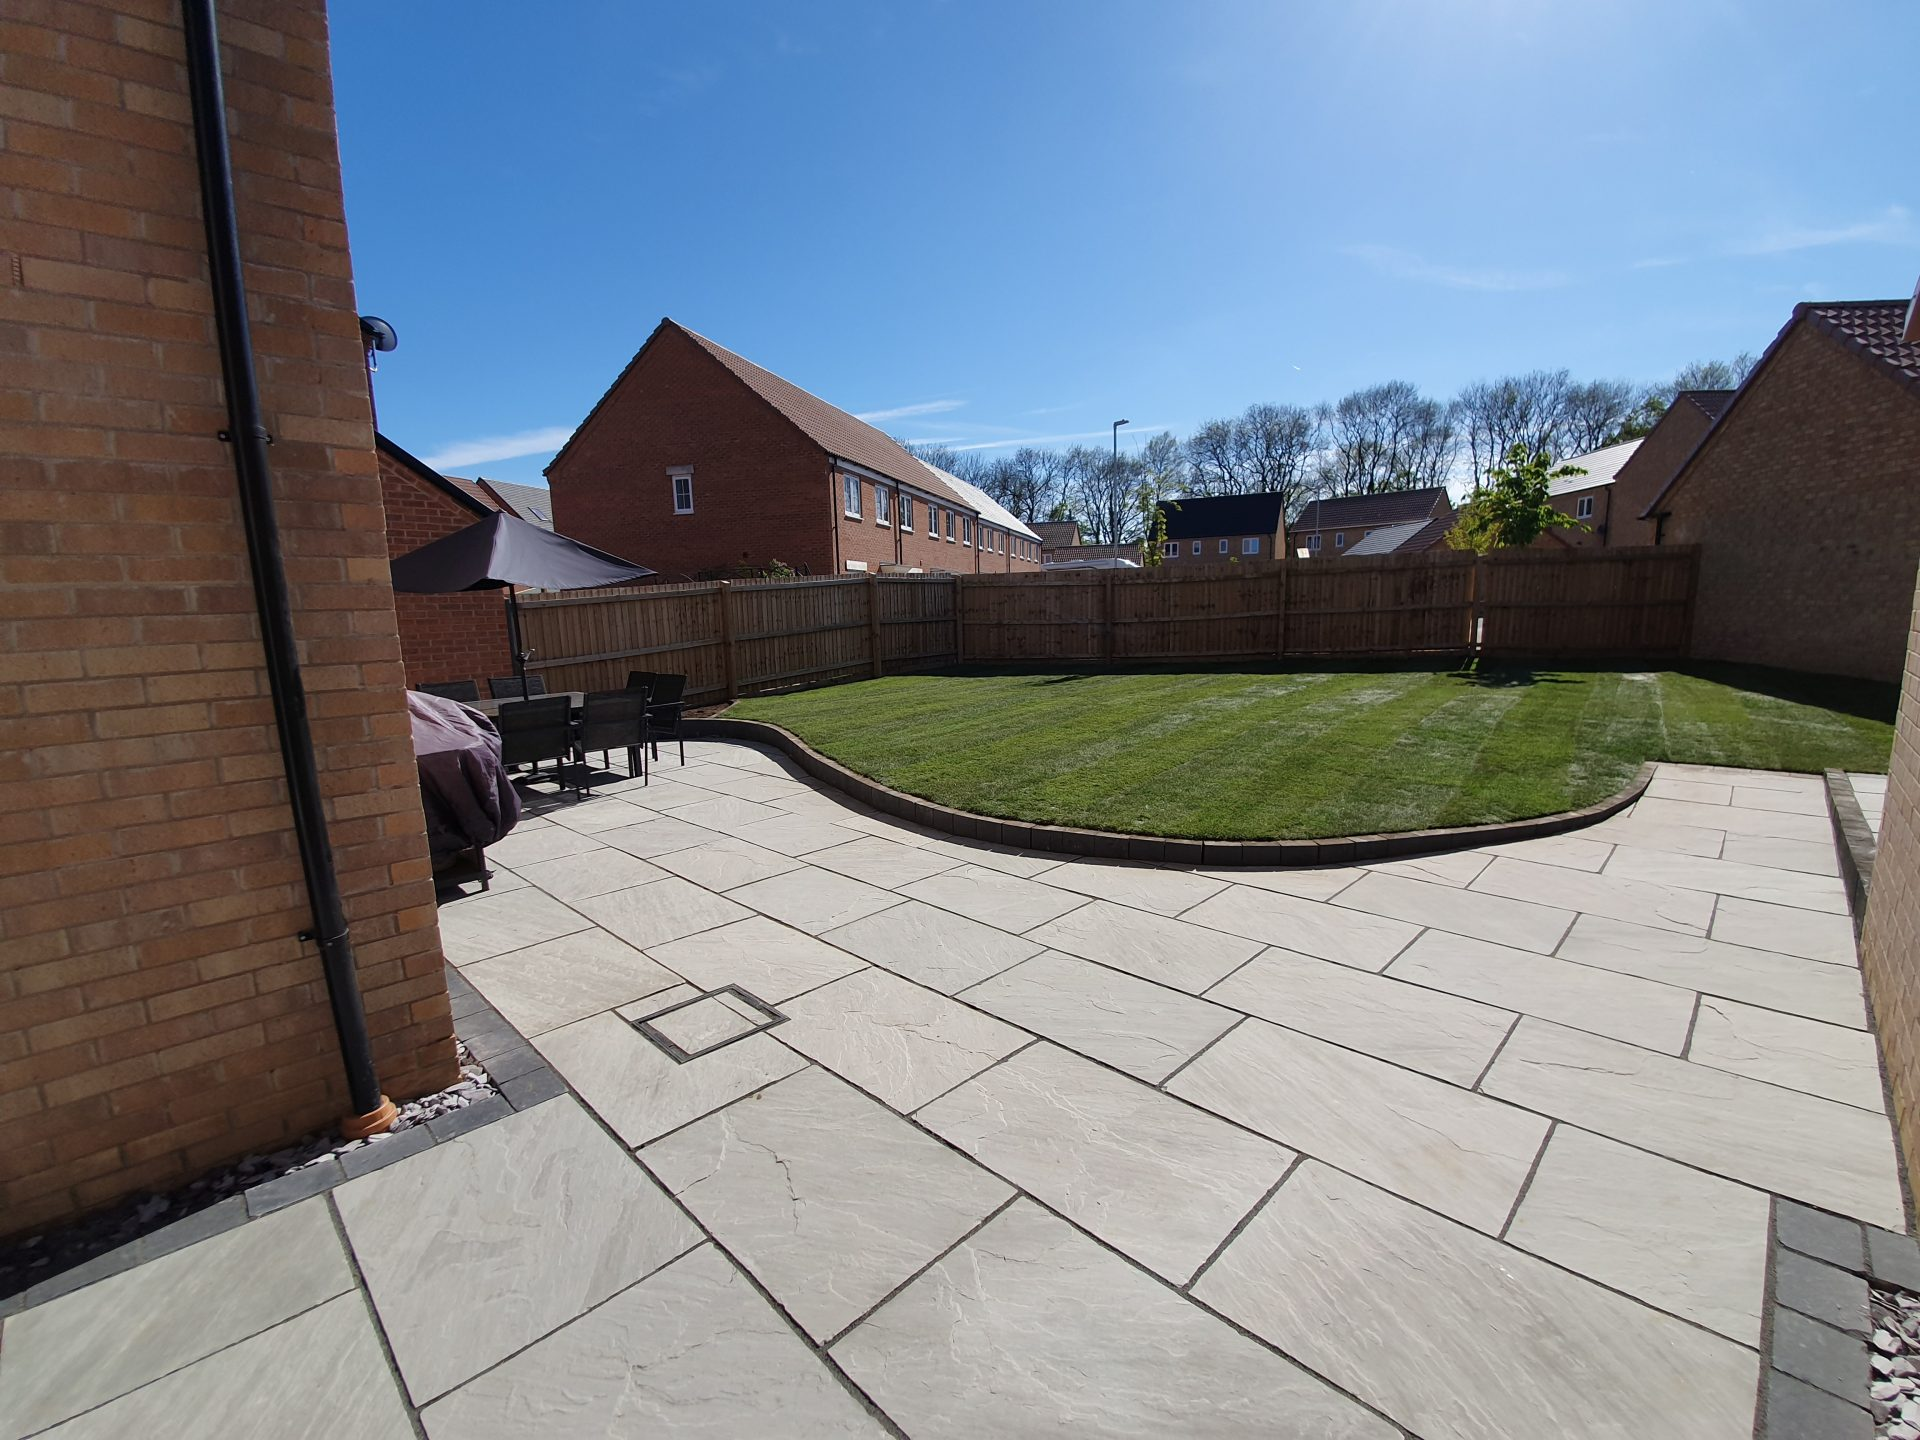 raised lawn curved large patio seating area